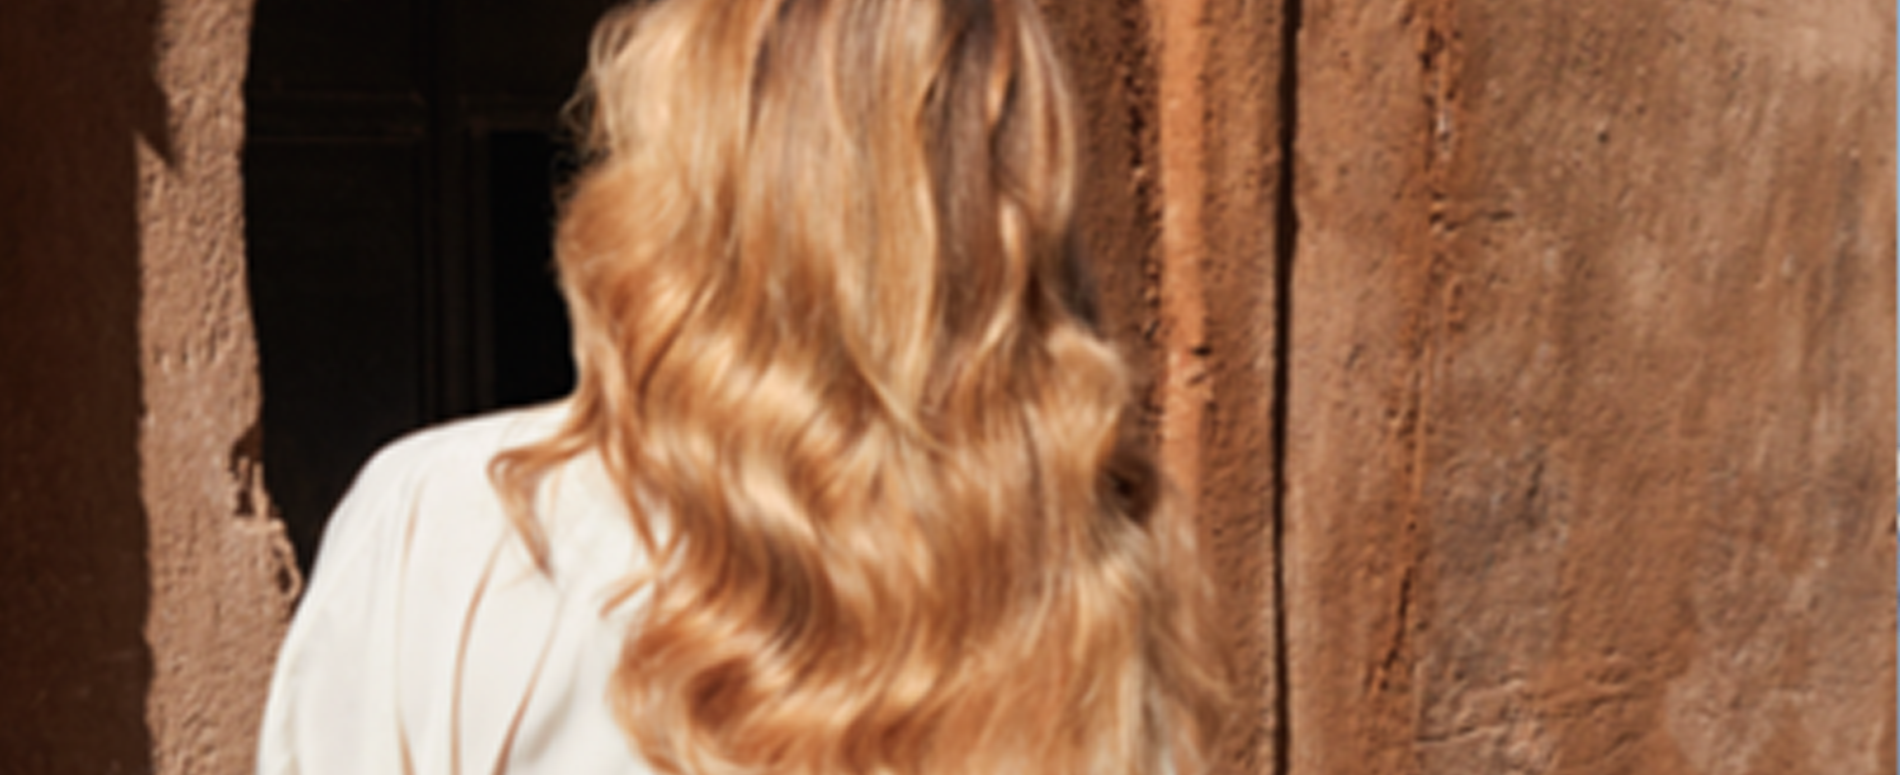 Back of a woman's head with sun-kissed hair, created using Wella Professionals' Illuminage technique.